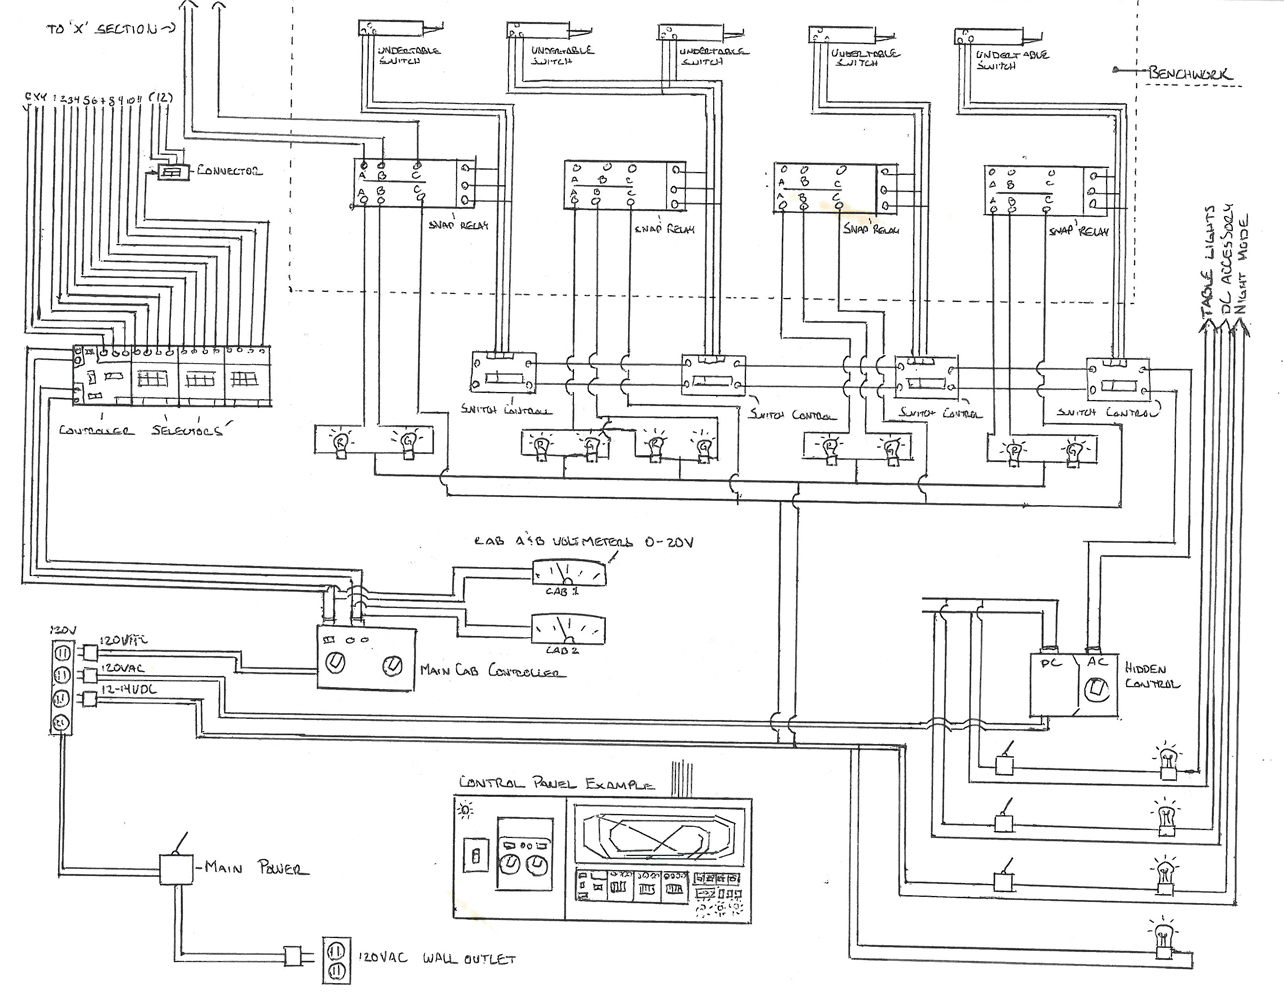 Relay And Switch Machine Control Wiring Diagram For Trackside Lights 21340101 Timer Defrost Original Planning Sketch Of Layout